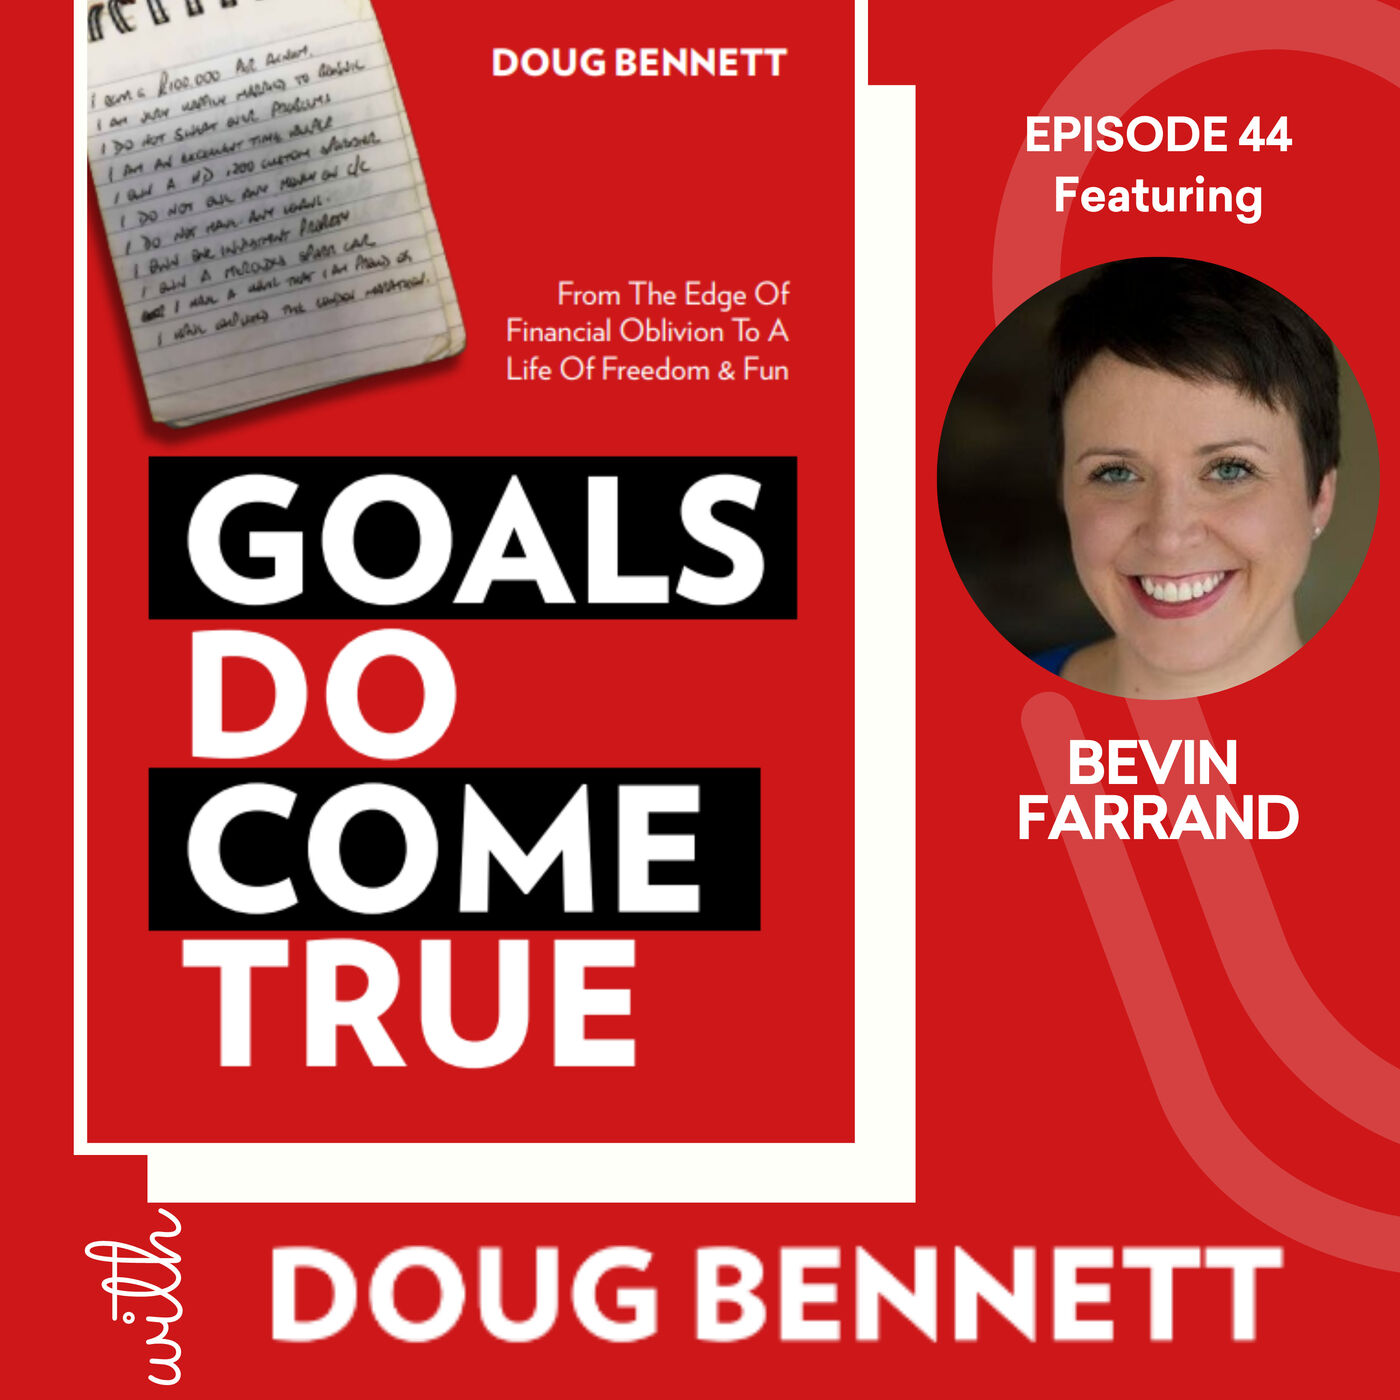 EP 44: Why You Should Take the DAMN Trip now with Bevin Farrand